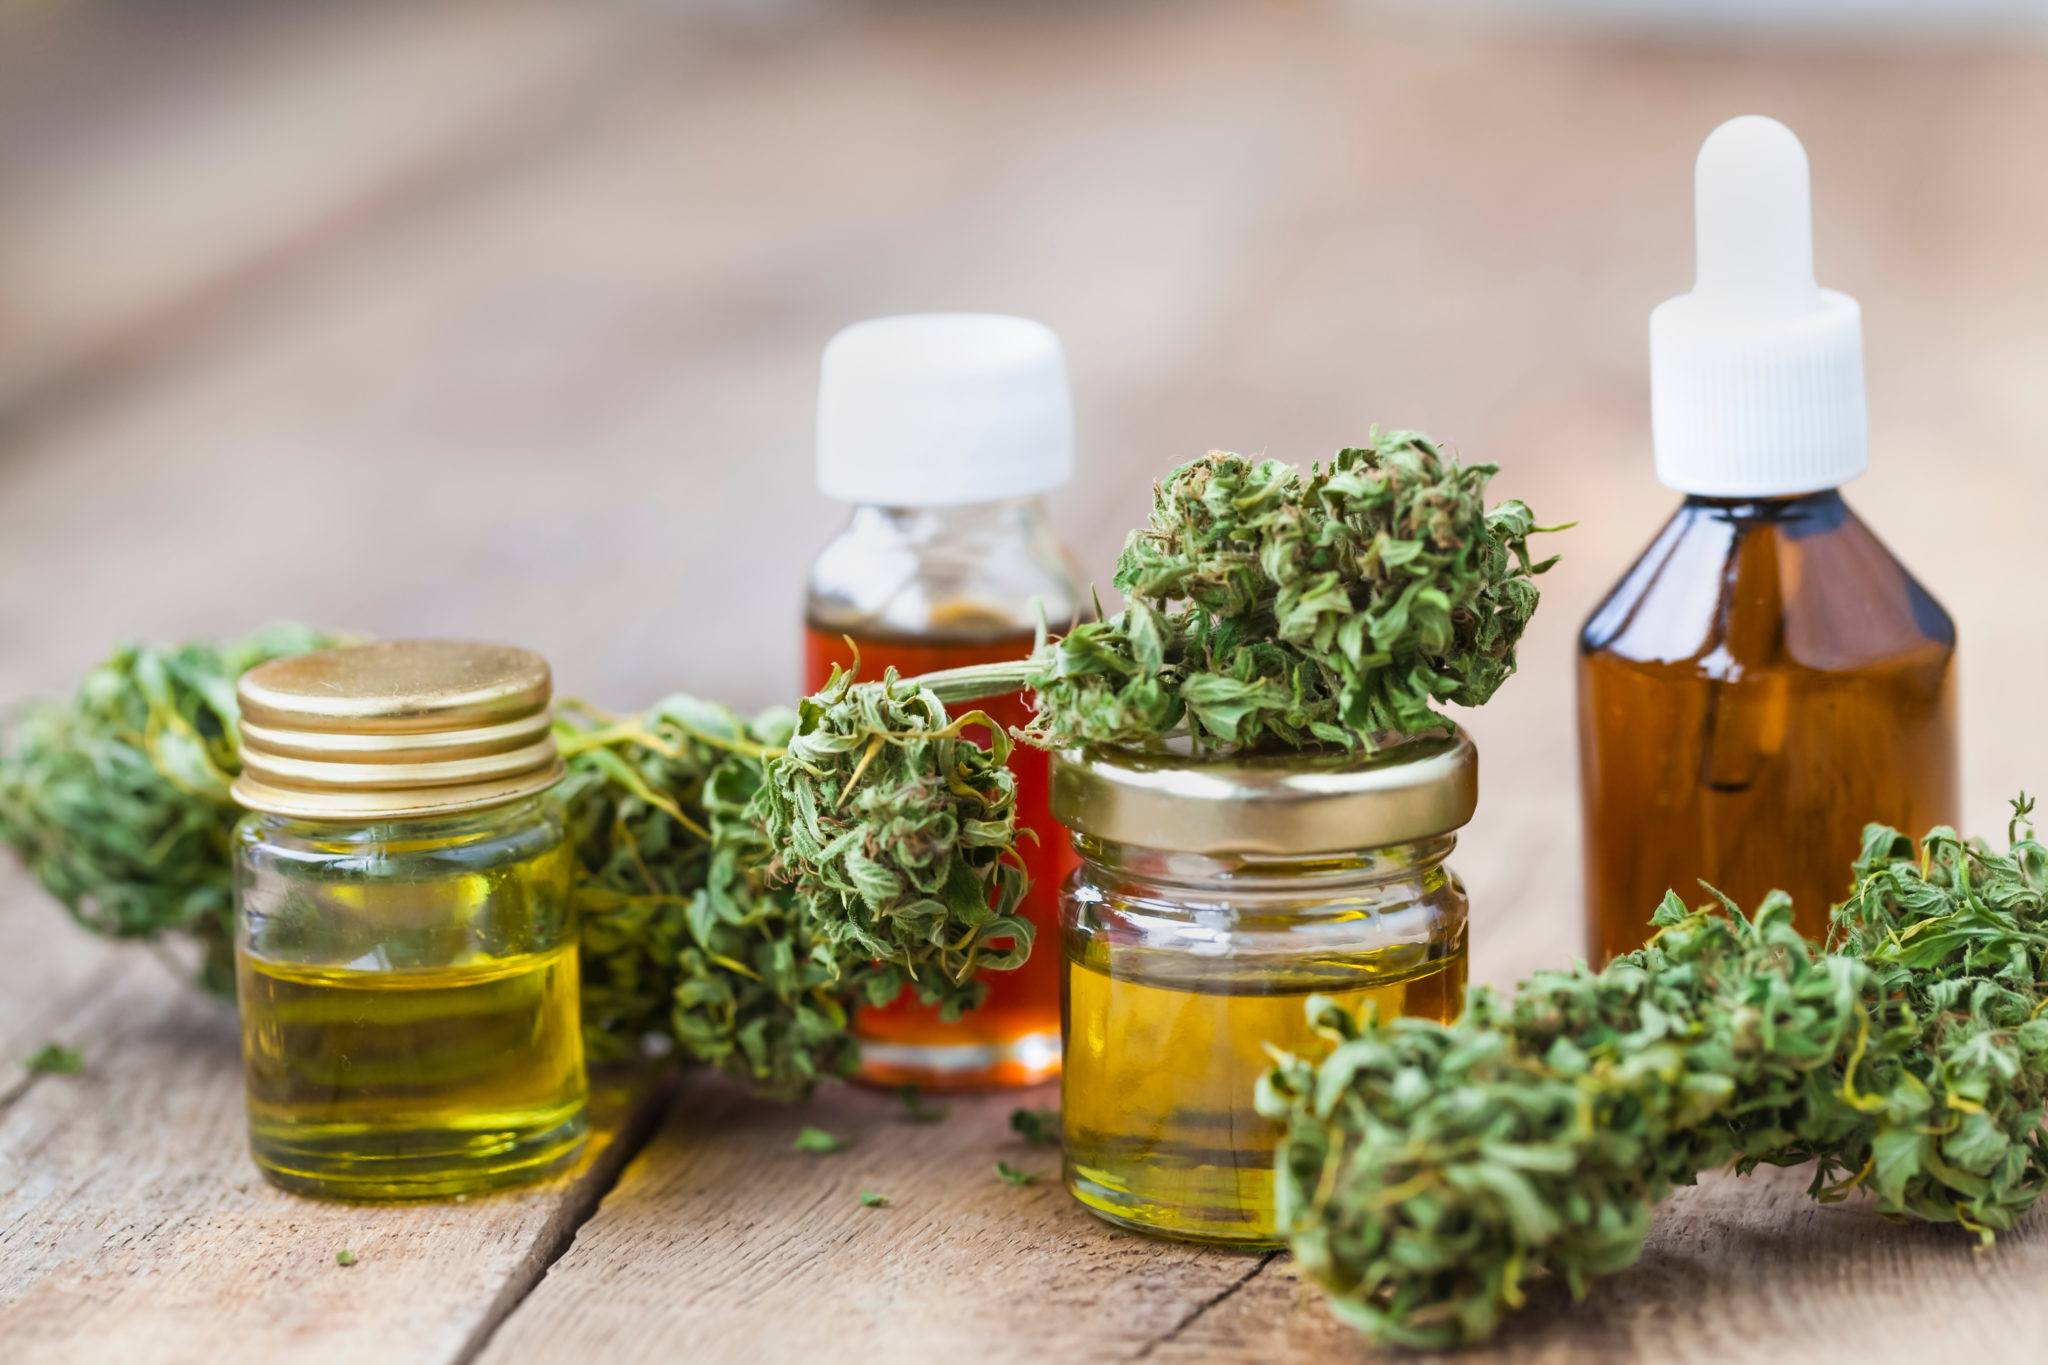 CBD oil helps so many people, but why is CBD expensive? We took a closer look at some of the costs that go into making the supplement. Photo: A collection of CBD tinctures in assorted bottles, decorated with hemp buds.